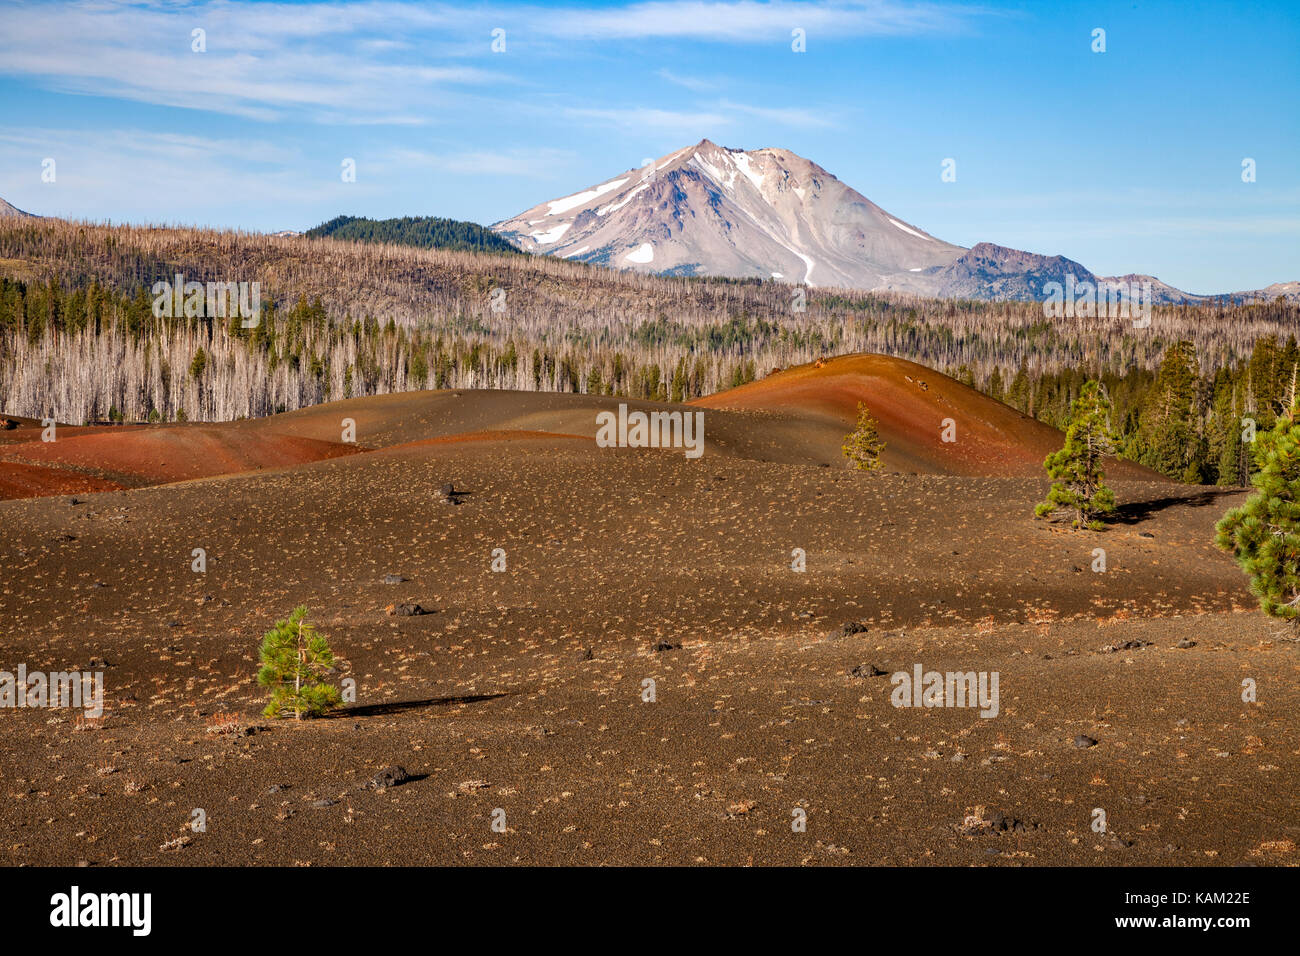 Mt Lassen rises to the west of the Painted Dunes in Lassen Volcanic National Park - Stock Image